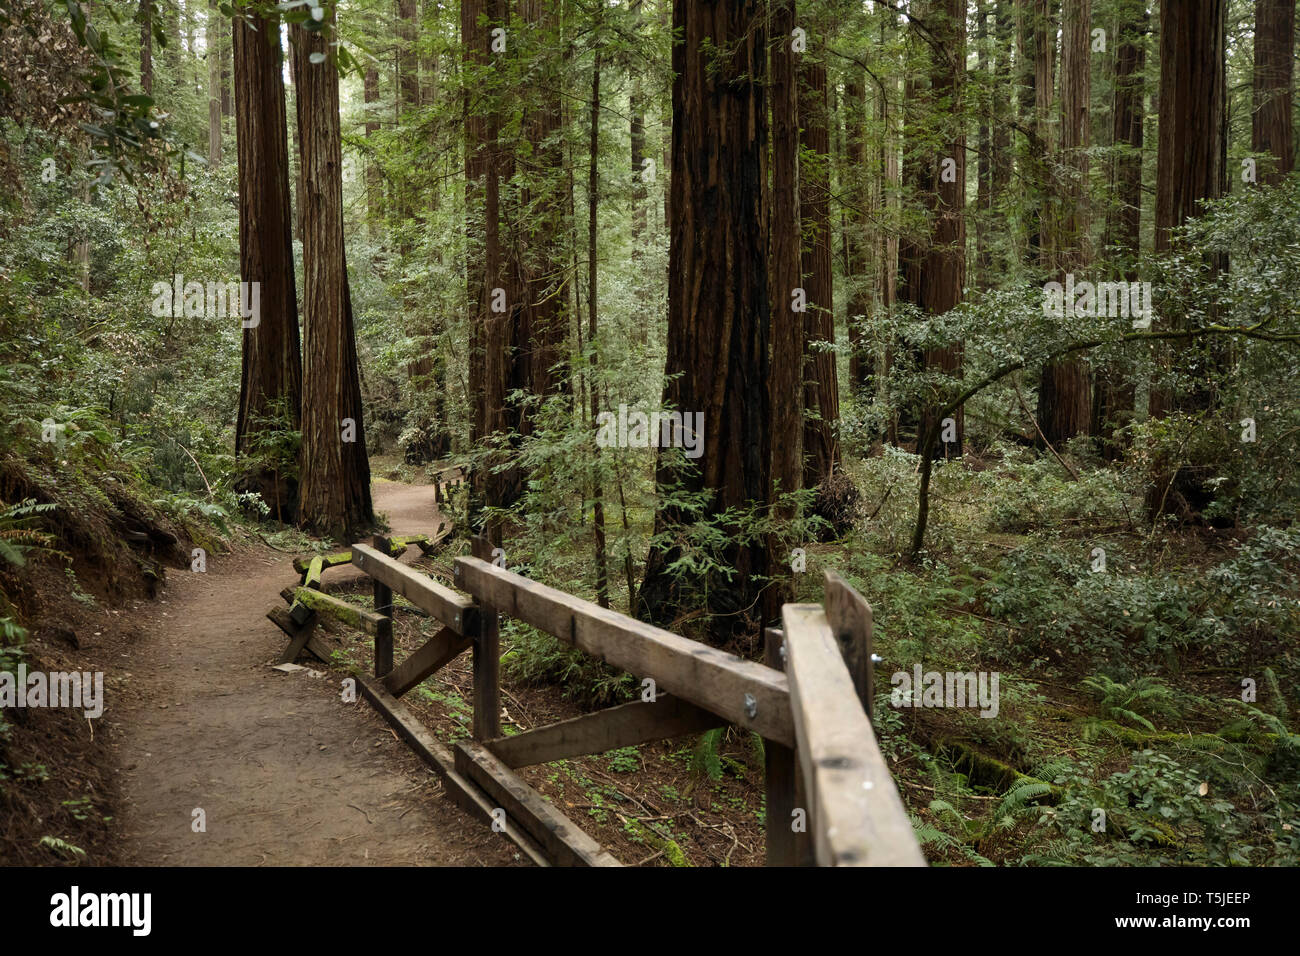 The Armstrong Redwoods State Reserve in Guerneville, California is home to thousands of towering redwood trees (Sequoia sempervirens) that are easily  - Stock Image